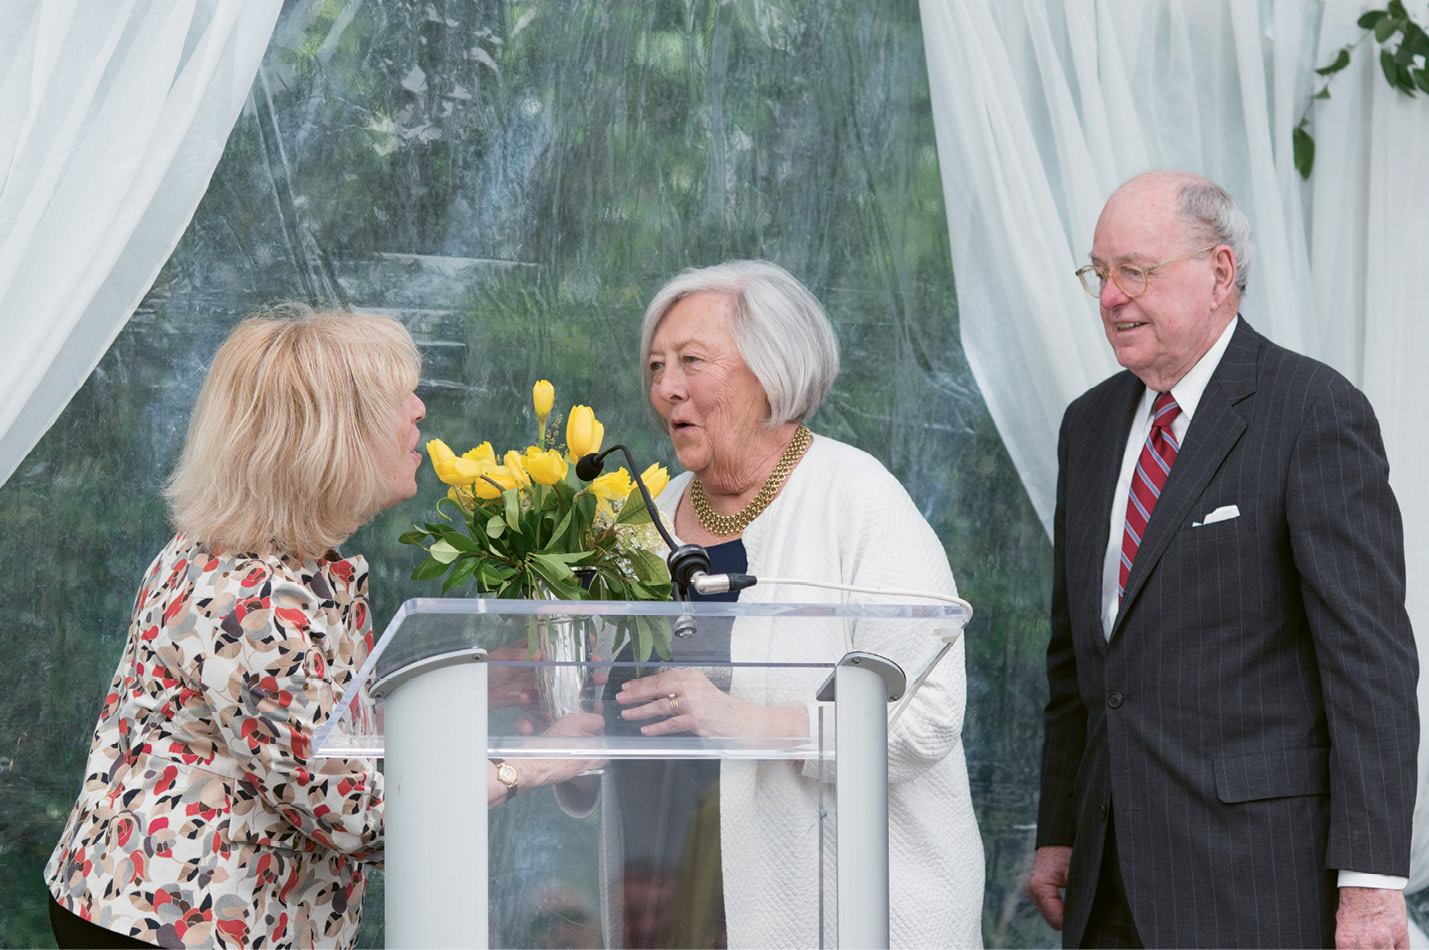 Last April, renowned flutist and Spoleto Festival Chamber Music alum Paula Robison presented the Mary Ramsay Civic Award to Peter and Patti.